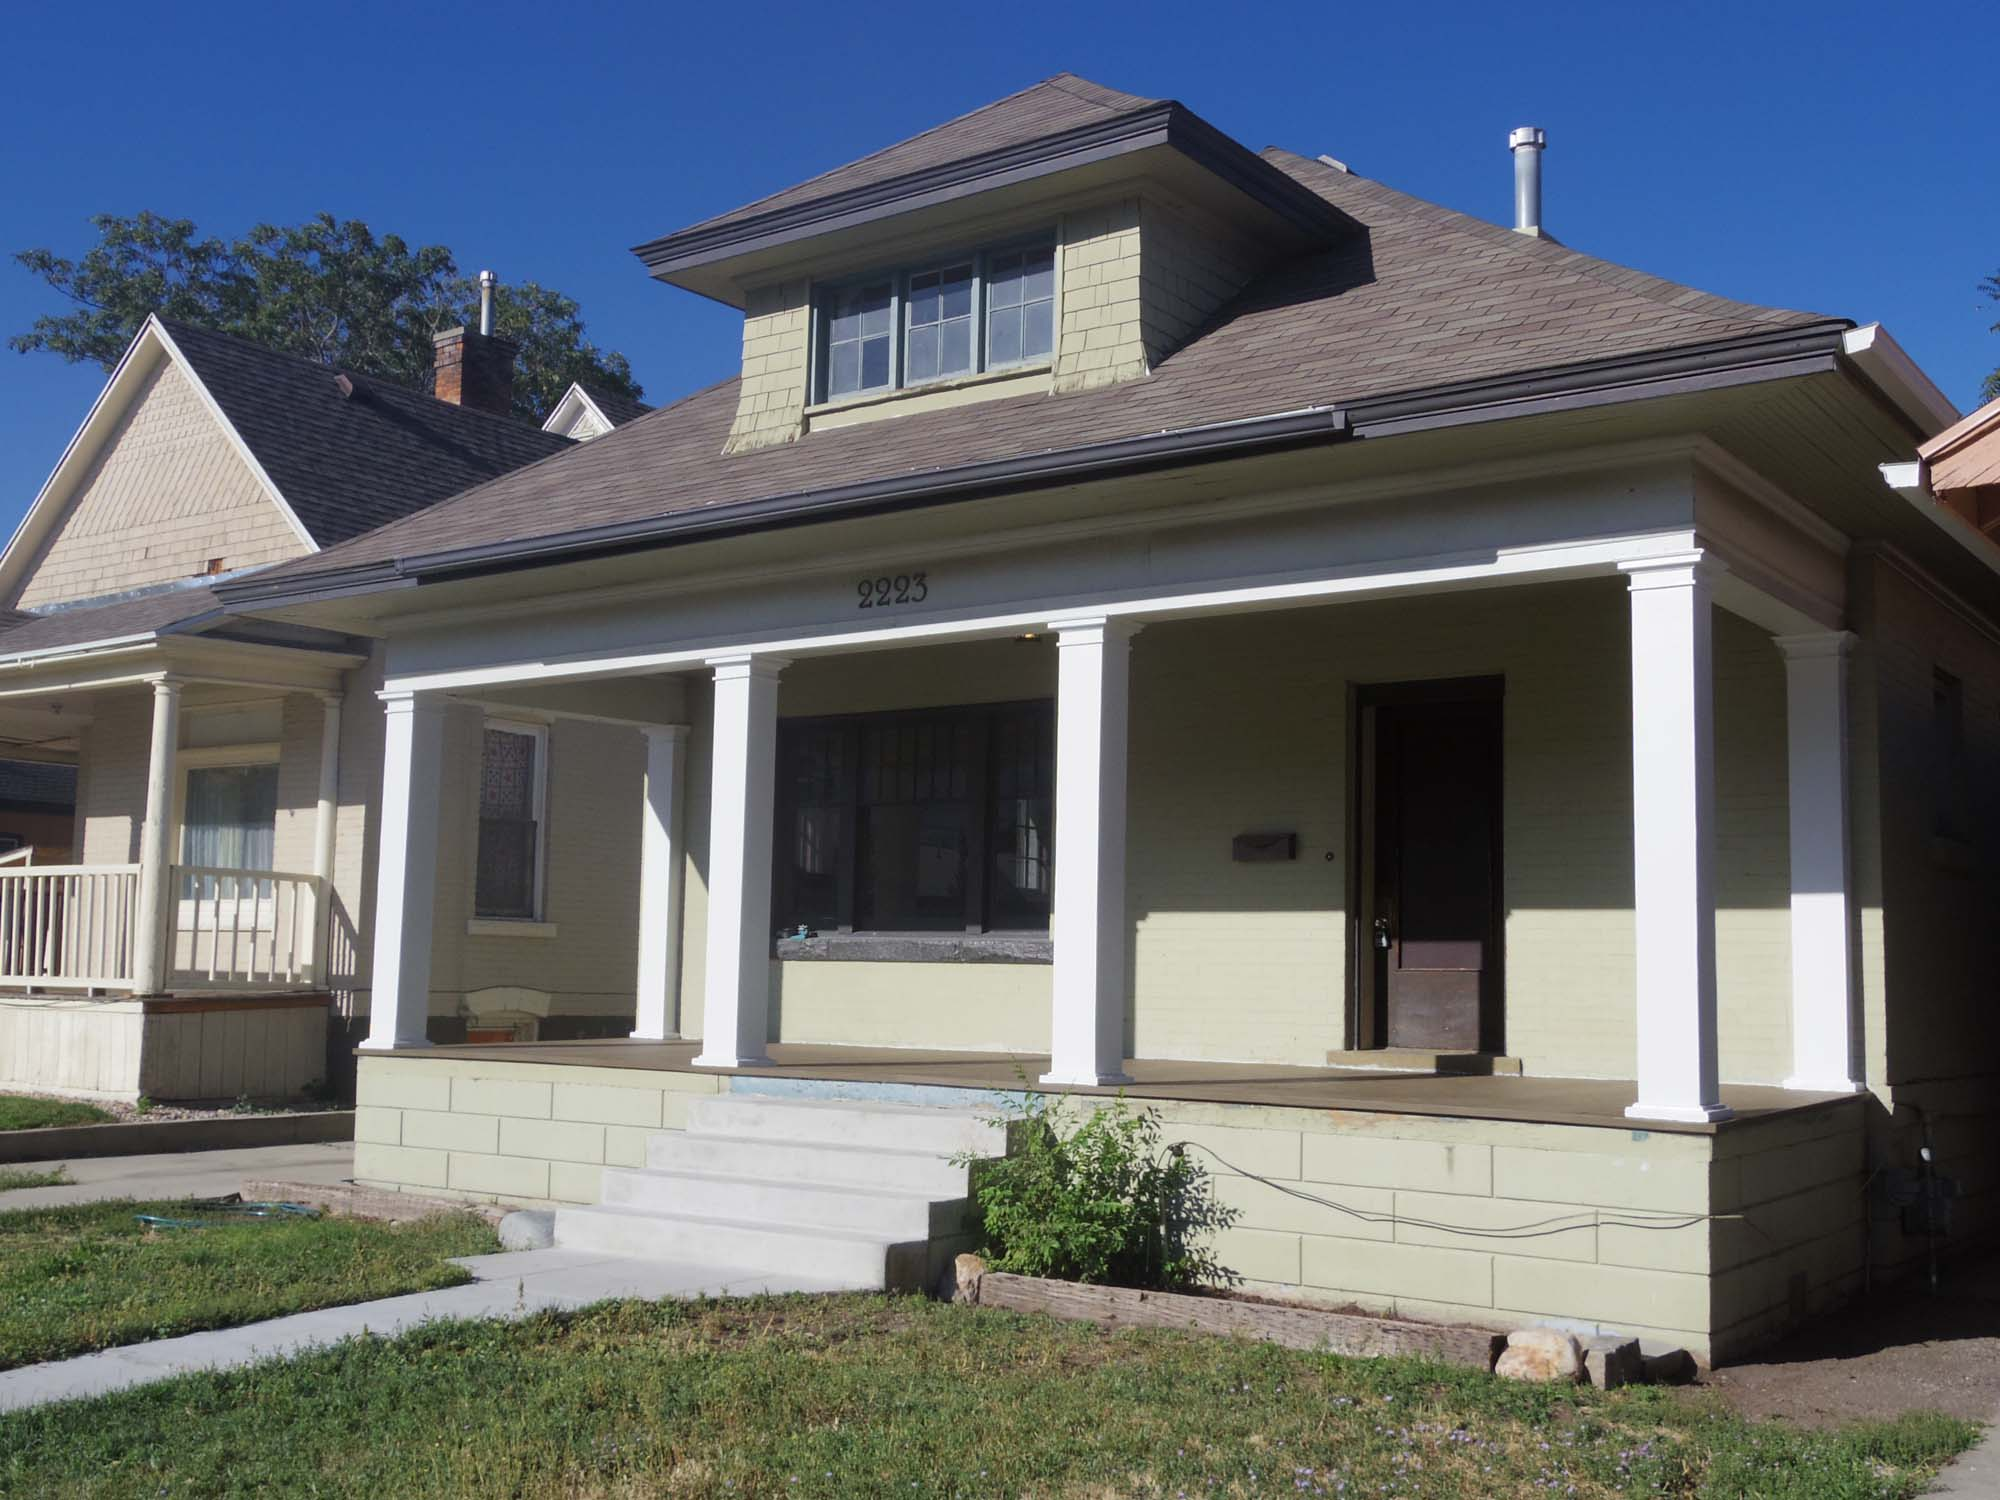 THE HIBBS HOUSE PROJECT: Before and After Photos